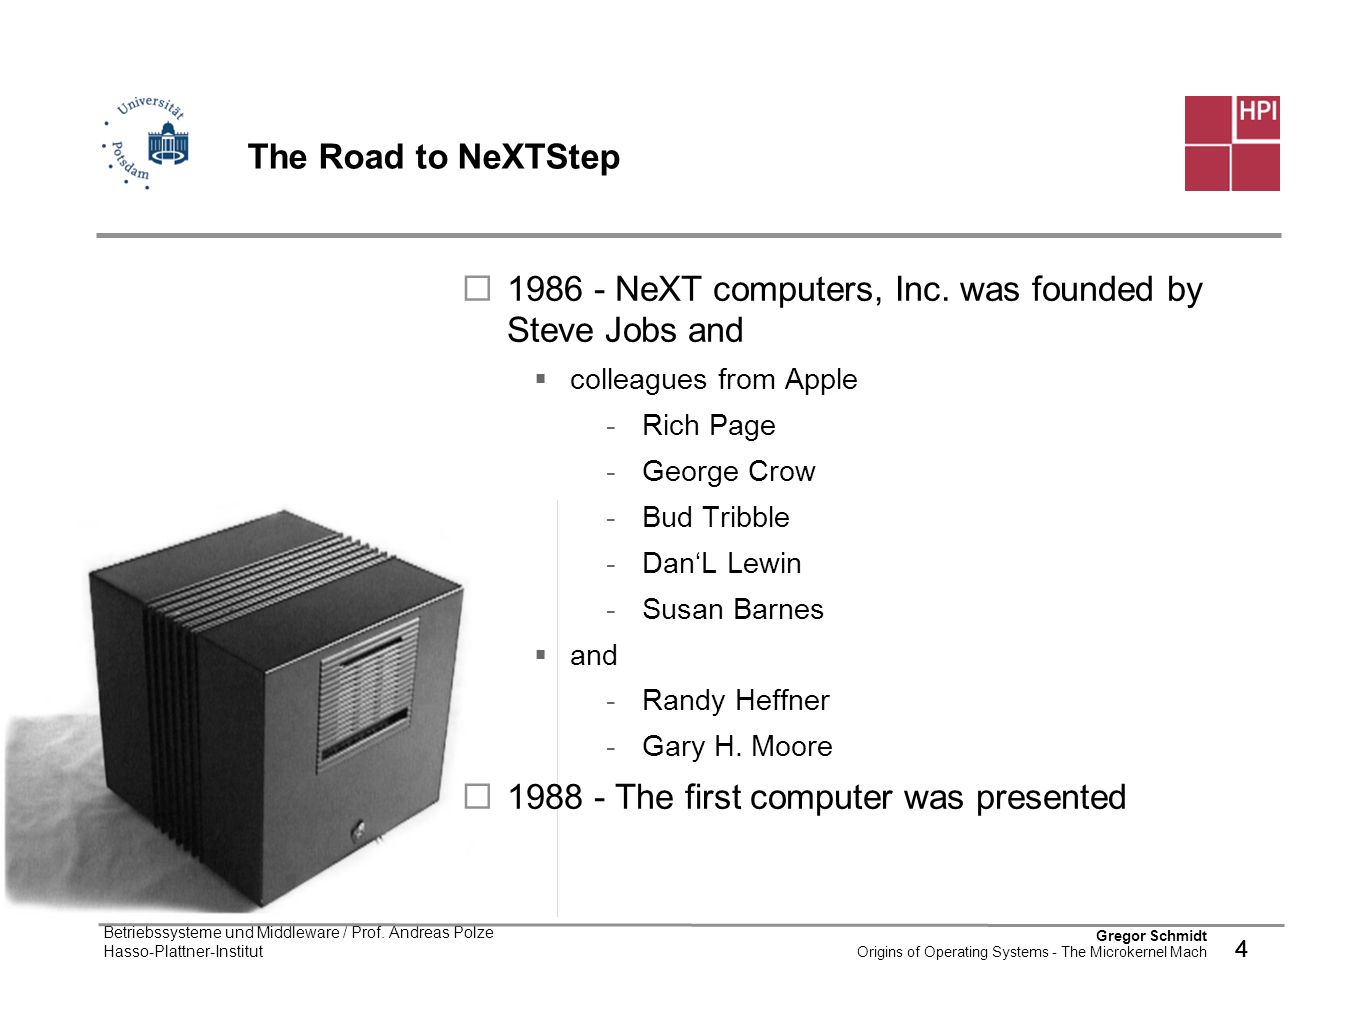 NeXT computers, Inc. was founded by Steve Jobs and